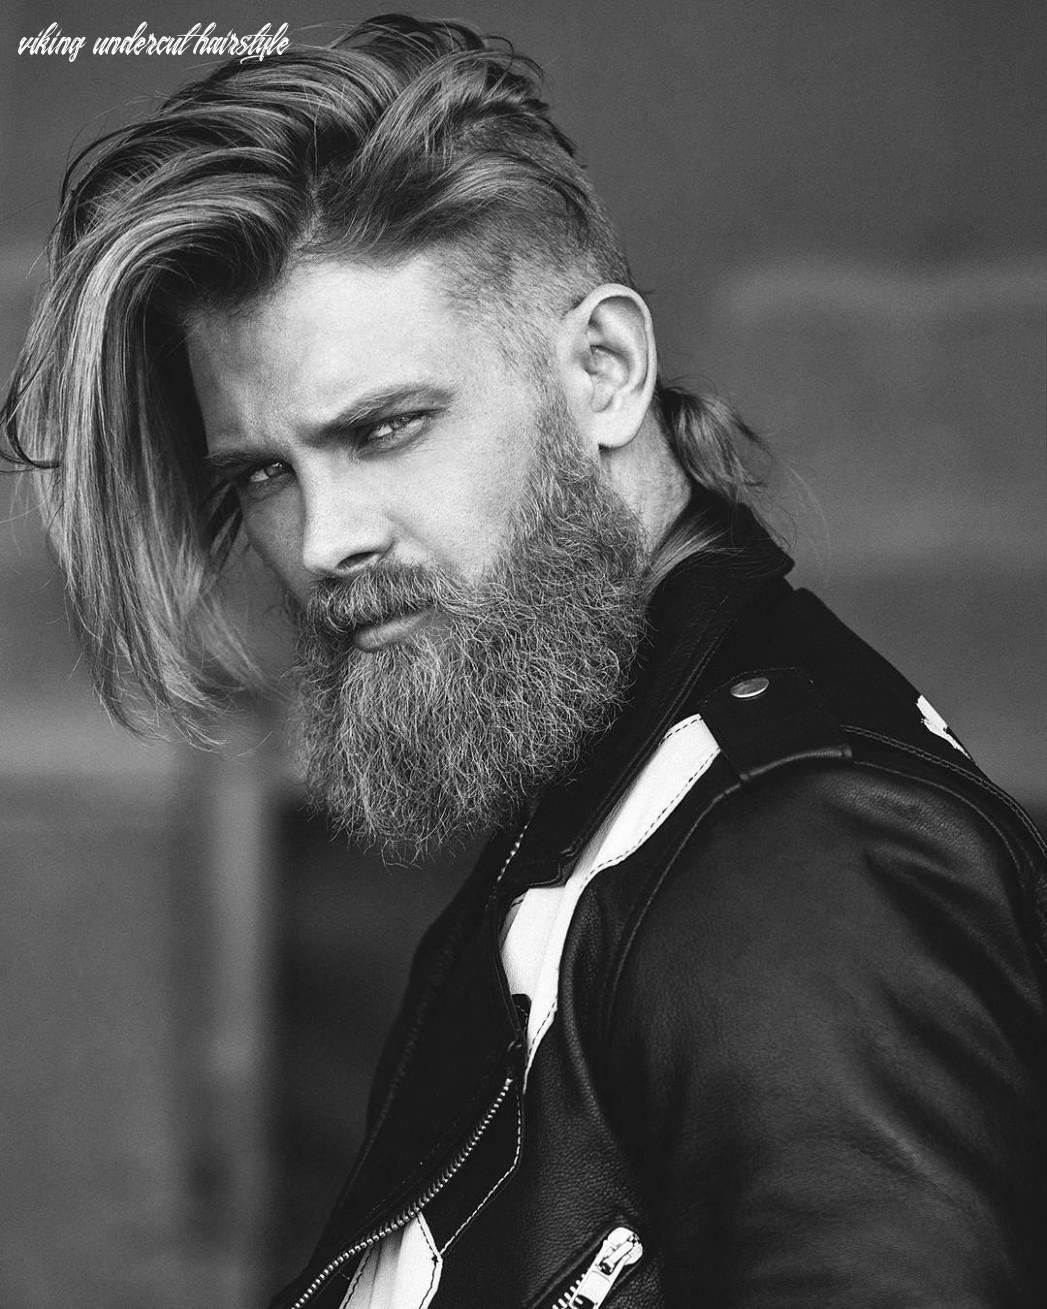 8 best viking hairstyles for the rugged man (8 update) viking undercut hairstyle